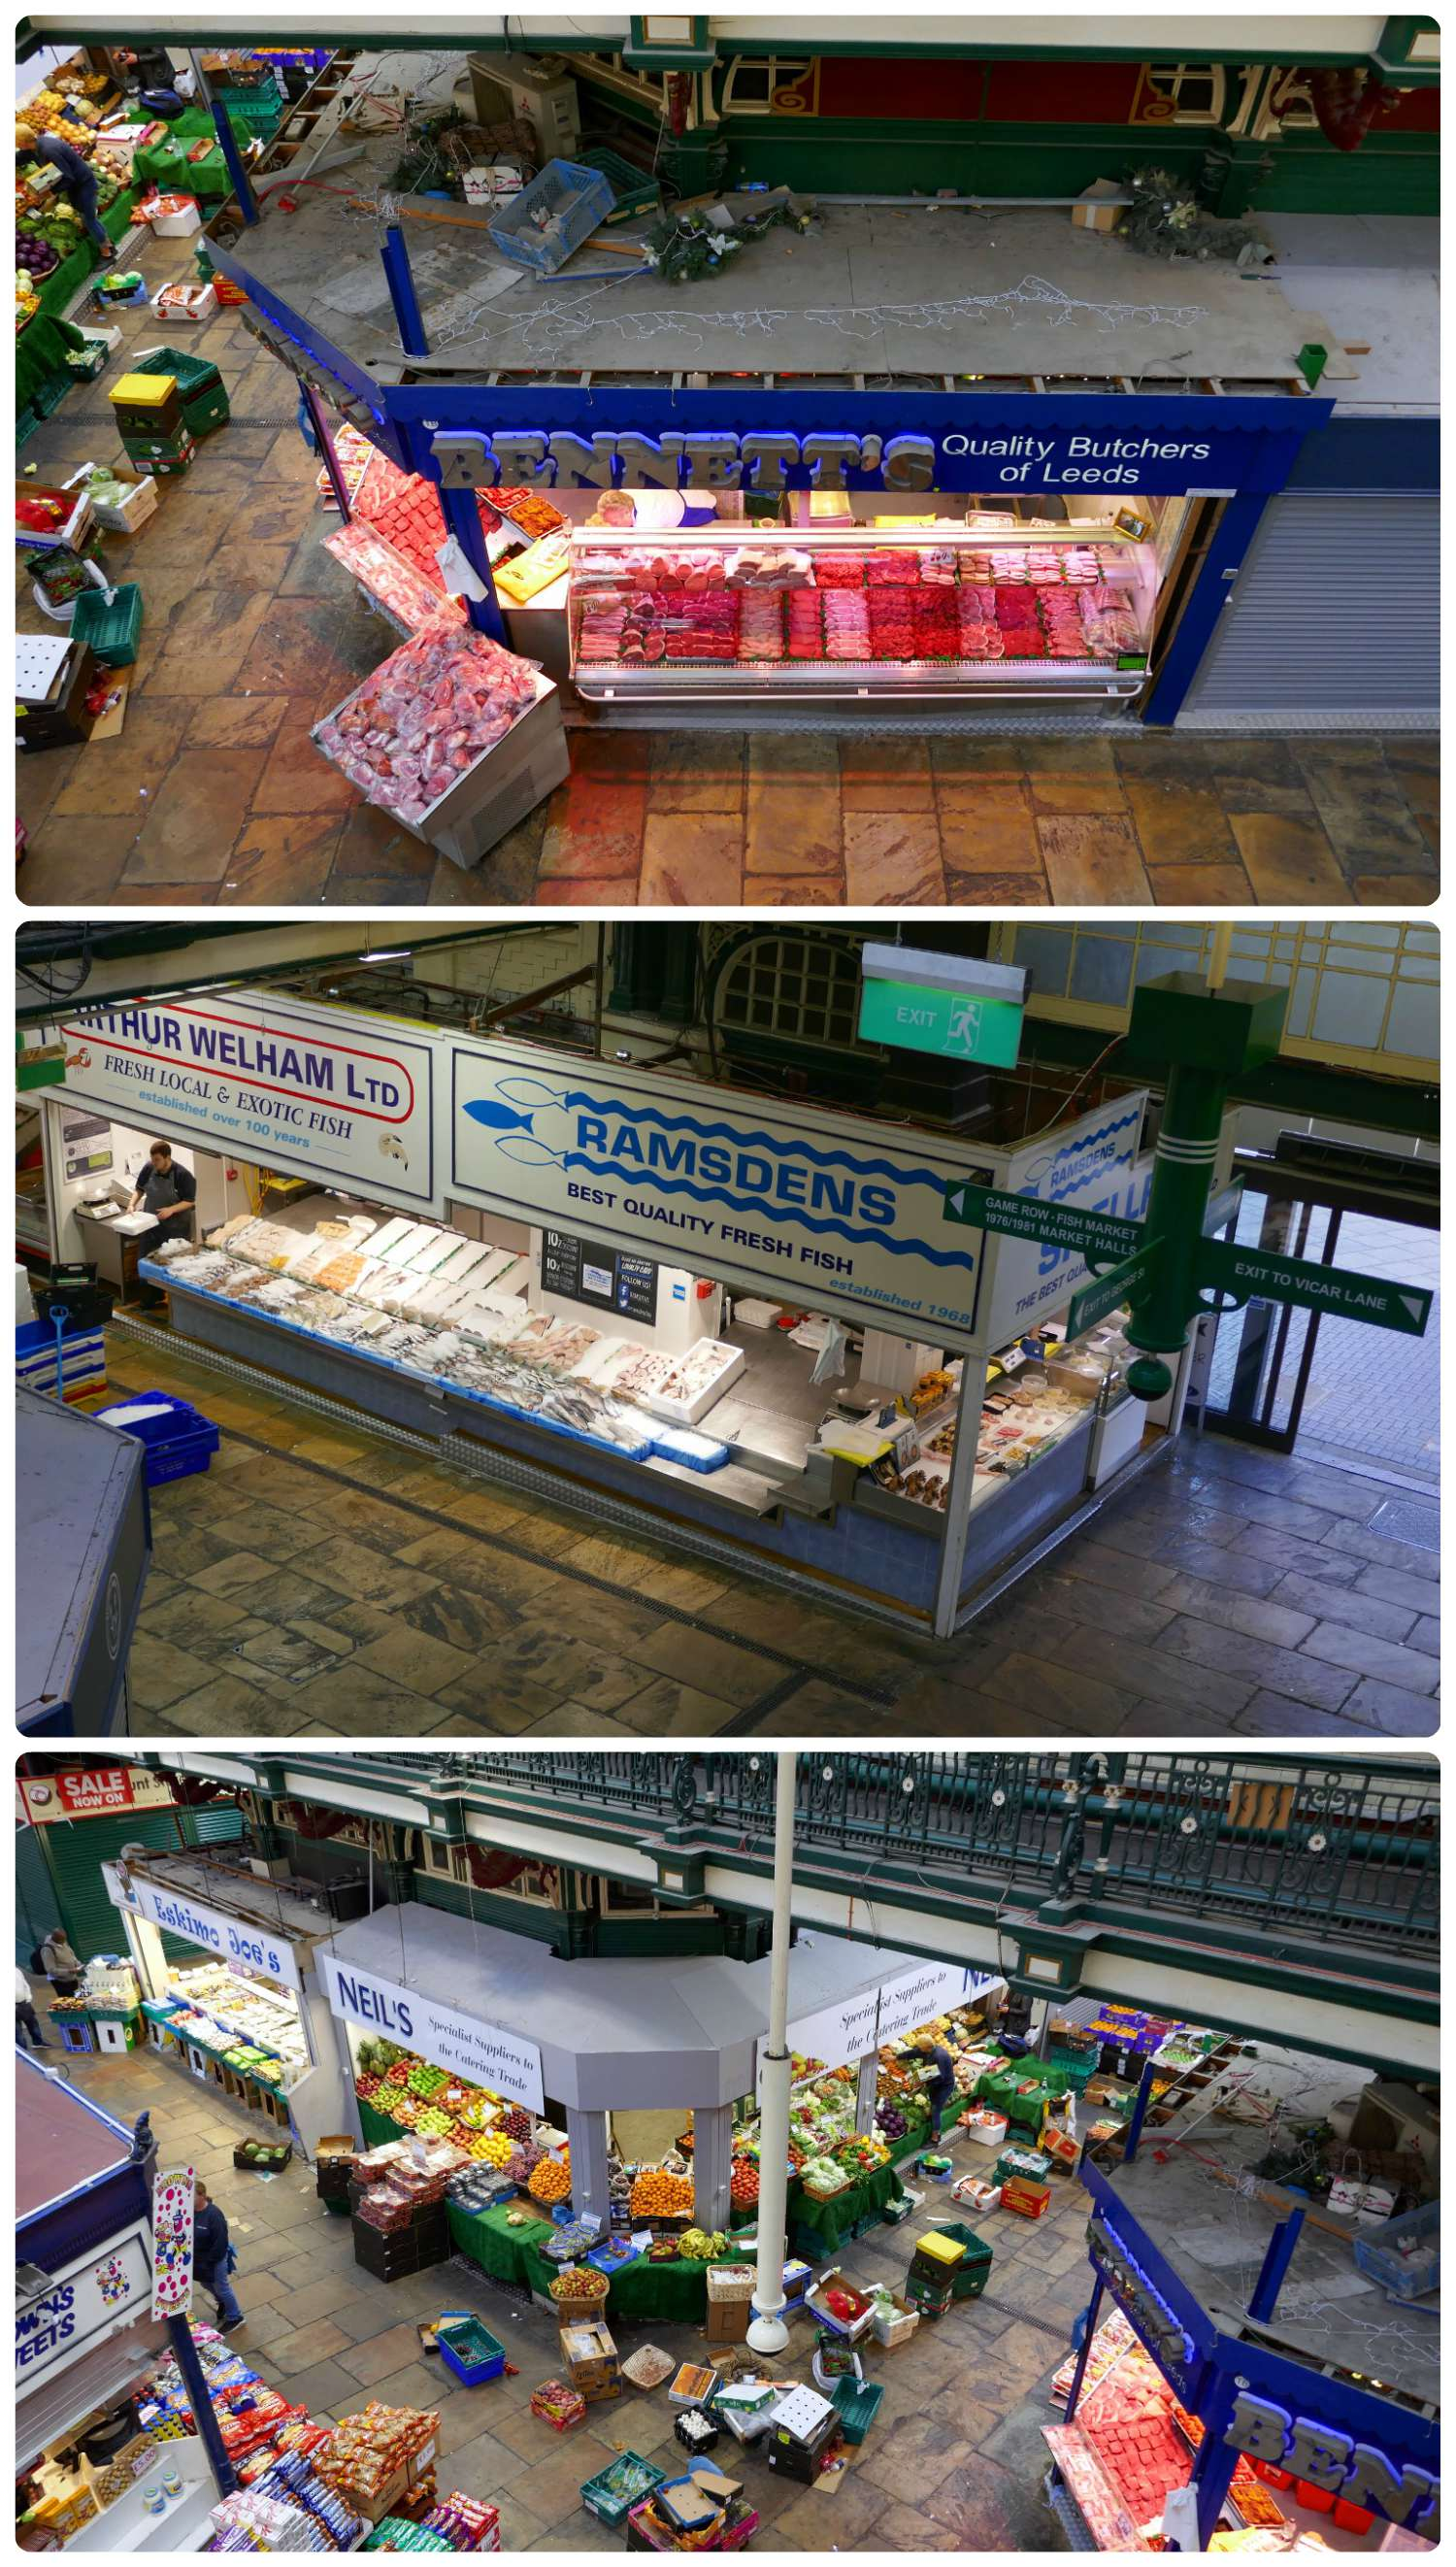 When it comes to shopping for food, Kirk Gate might just be one of the freshest markets in Leeds!